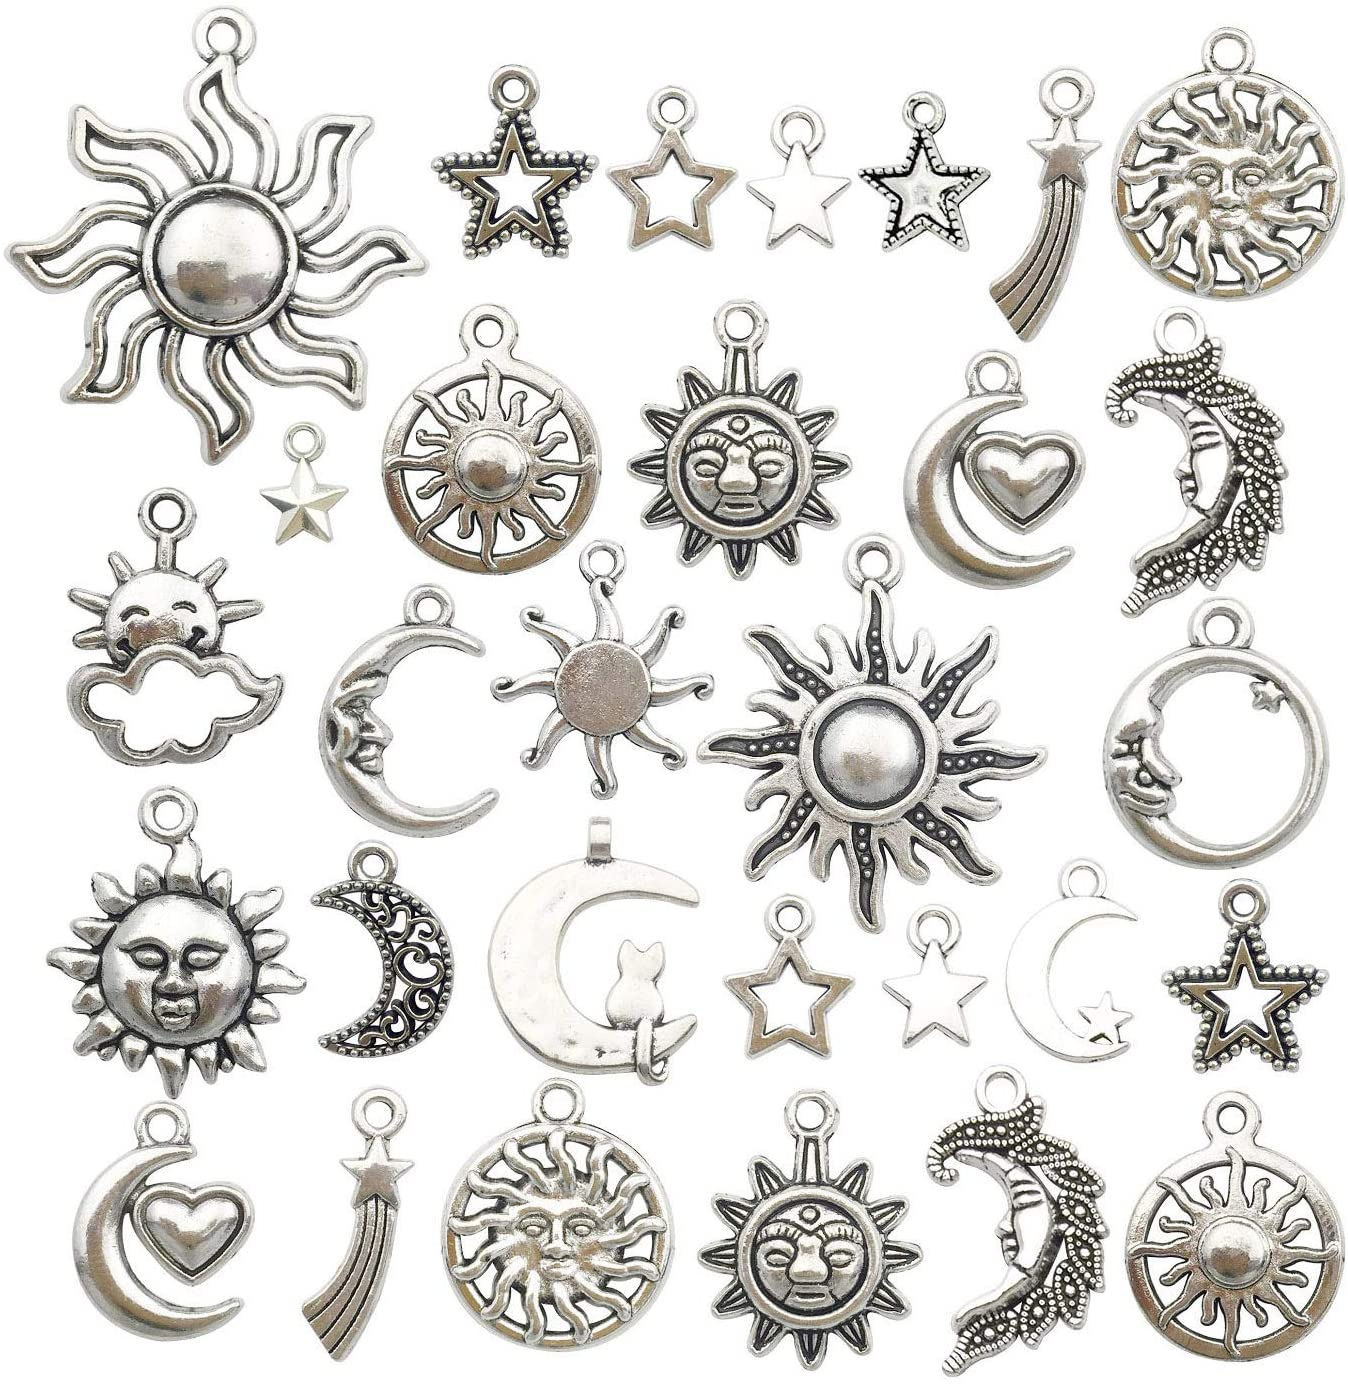 100g 80pcs Craft Supplies Mixed Antique Silver Sales for sale Moon Sun C Stars excellence